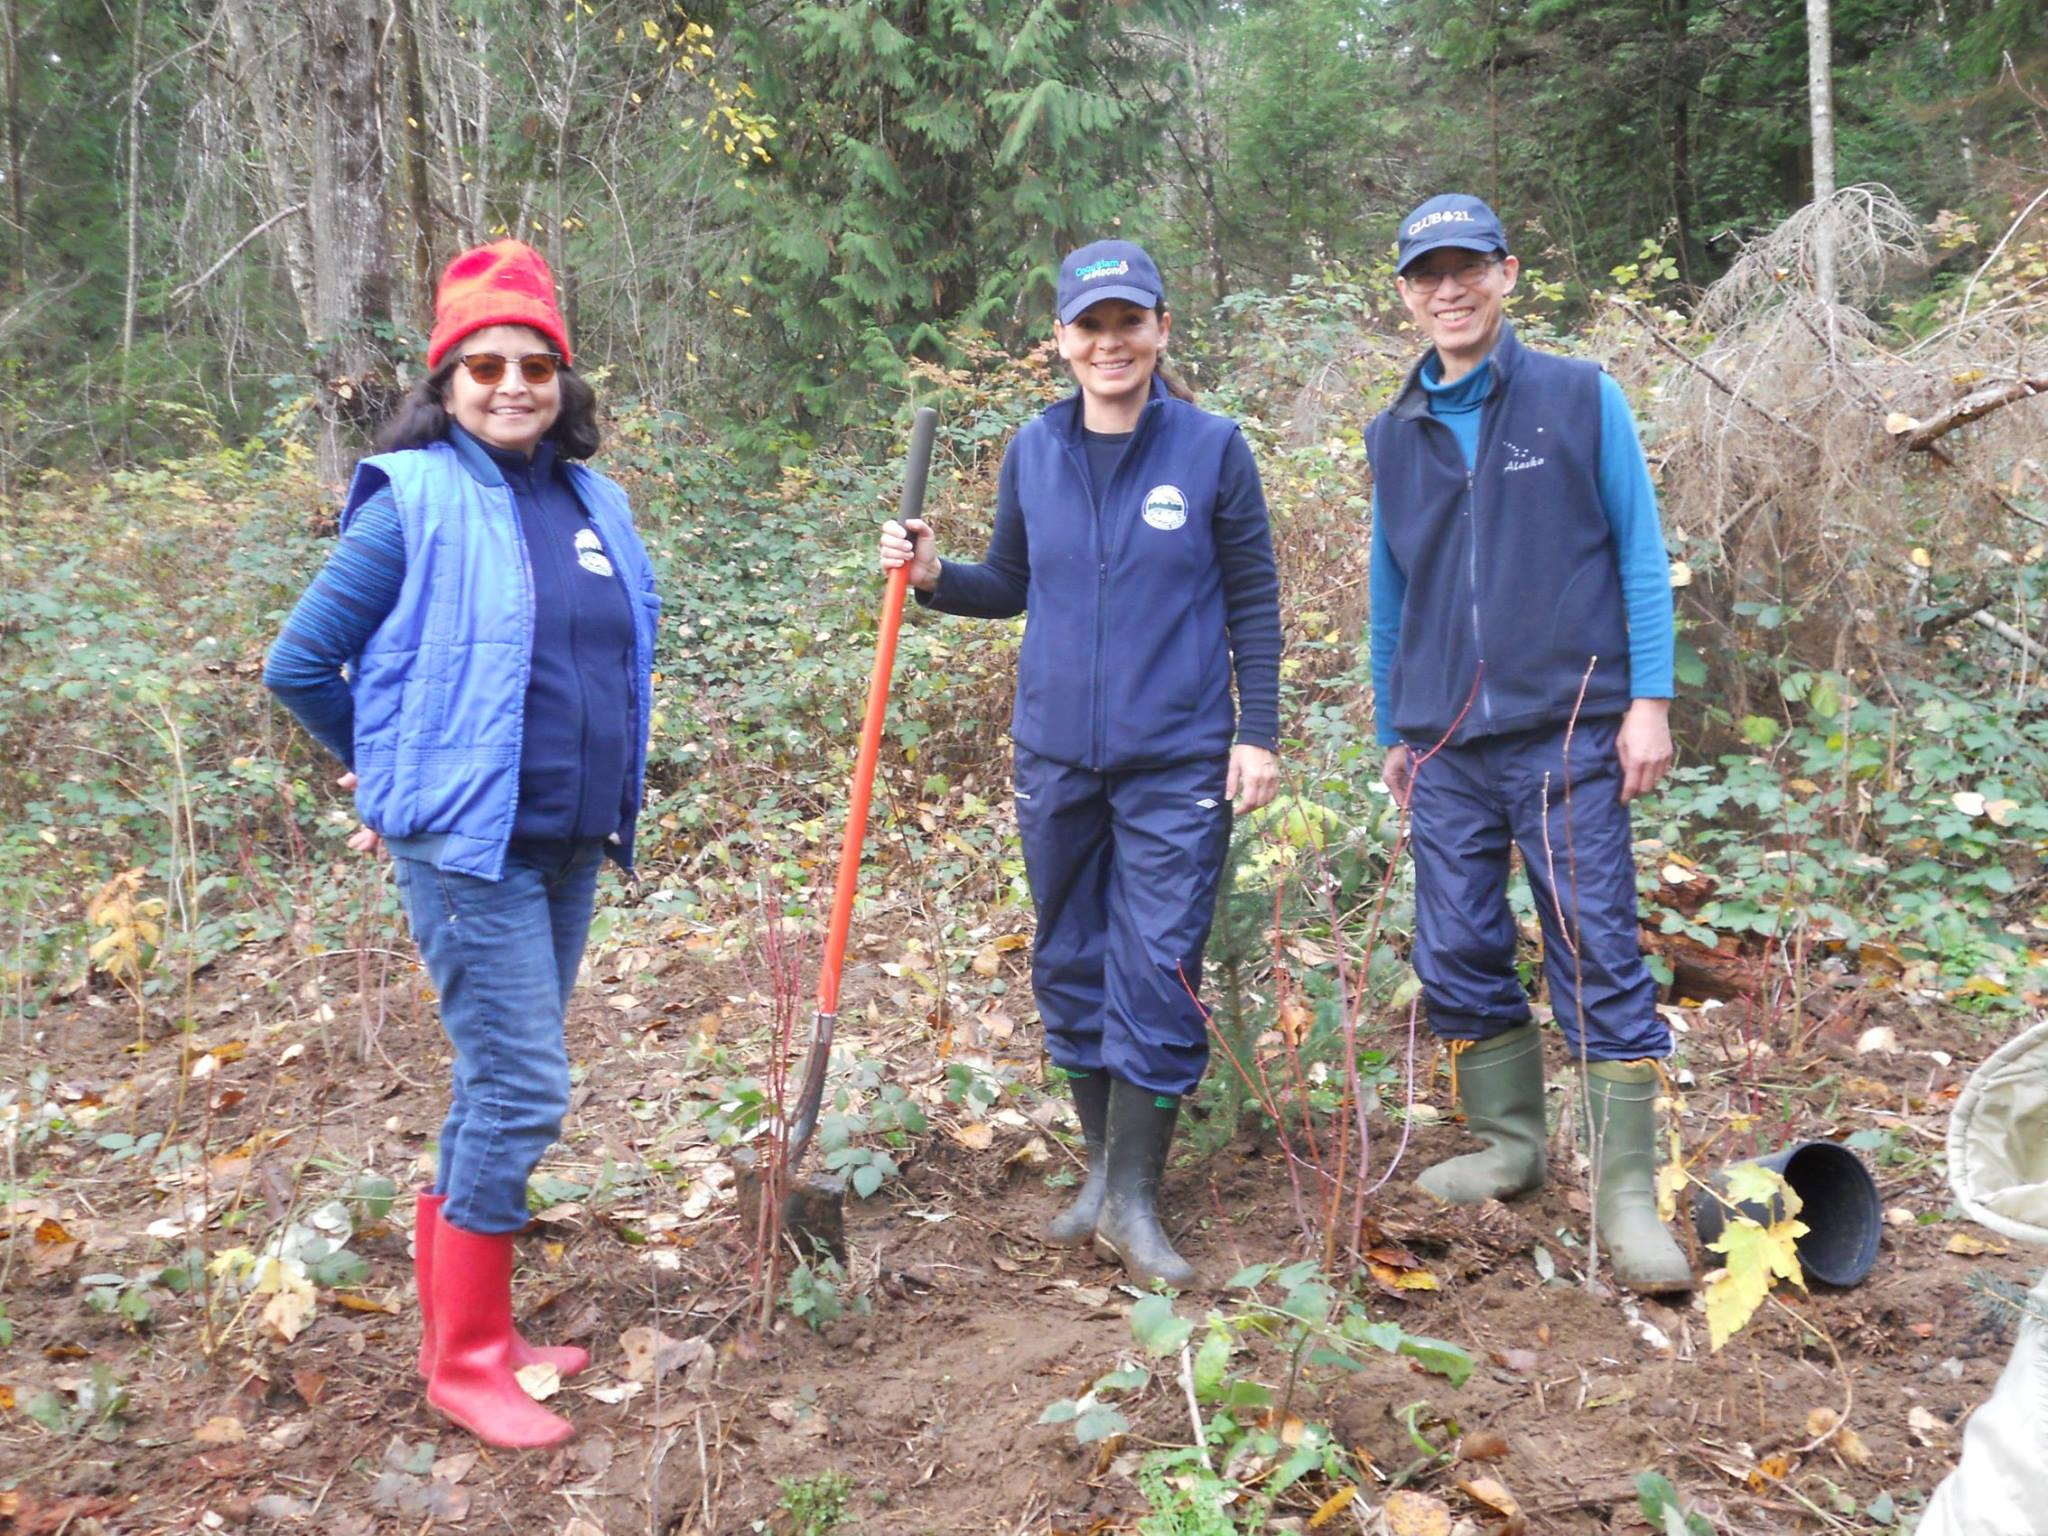 HSWS volunteers, Dulce, Robbin and Edmond in the planted area